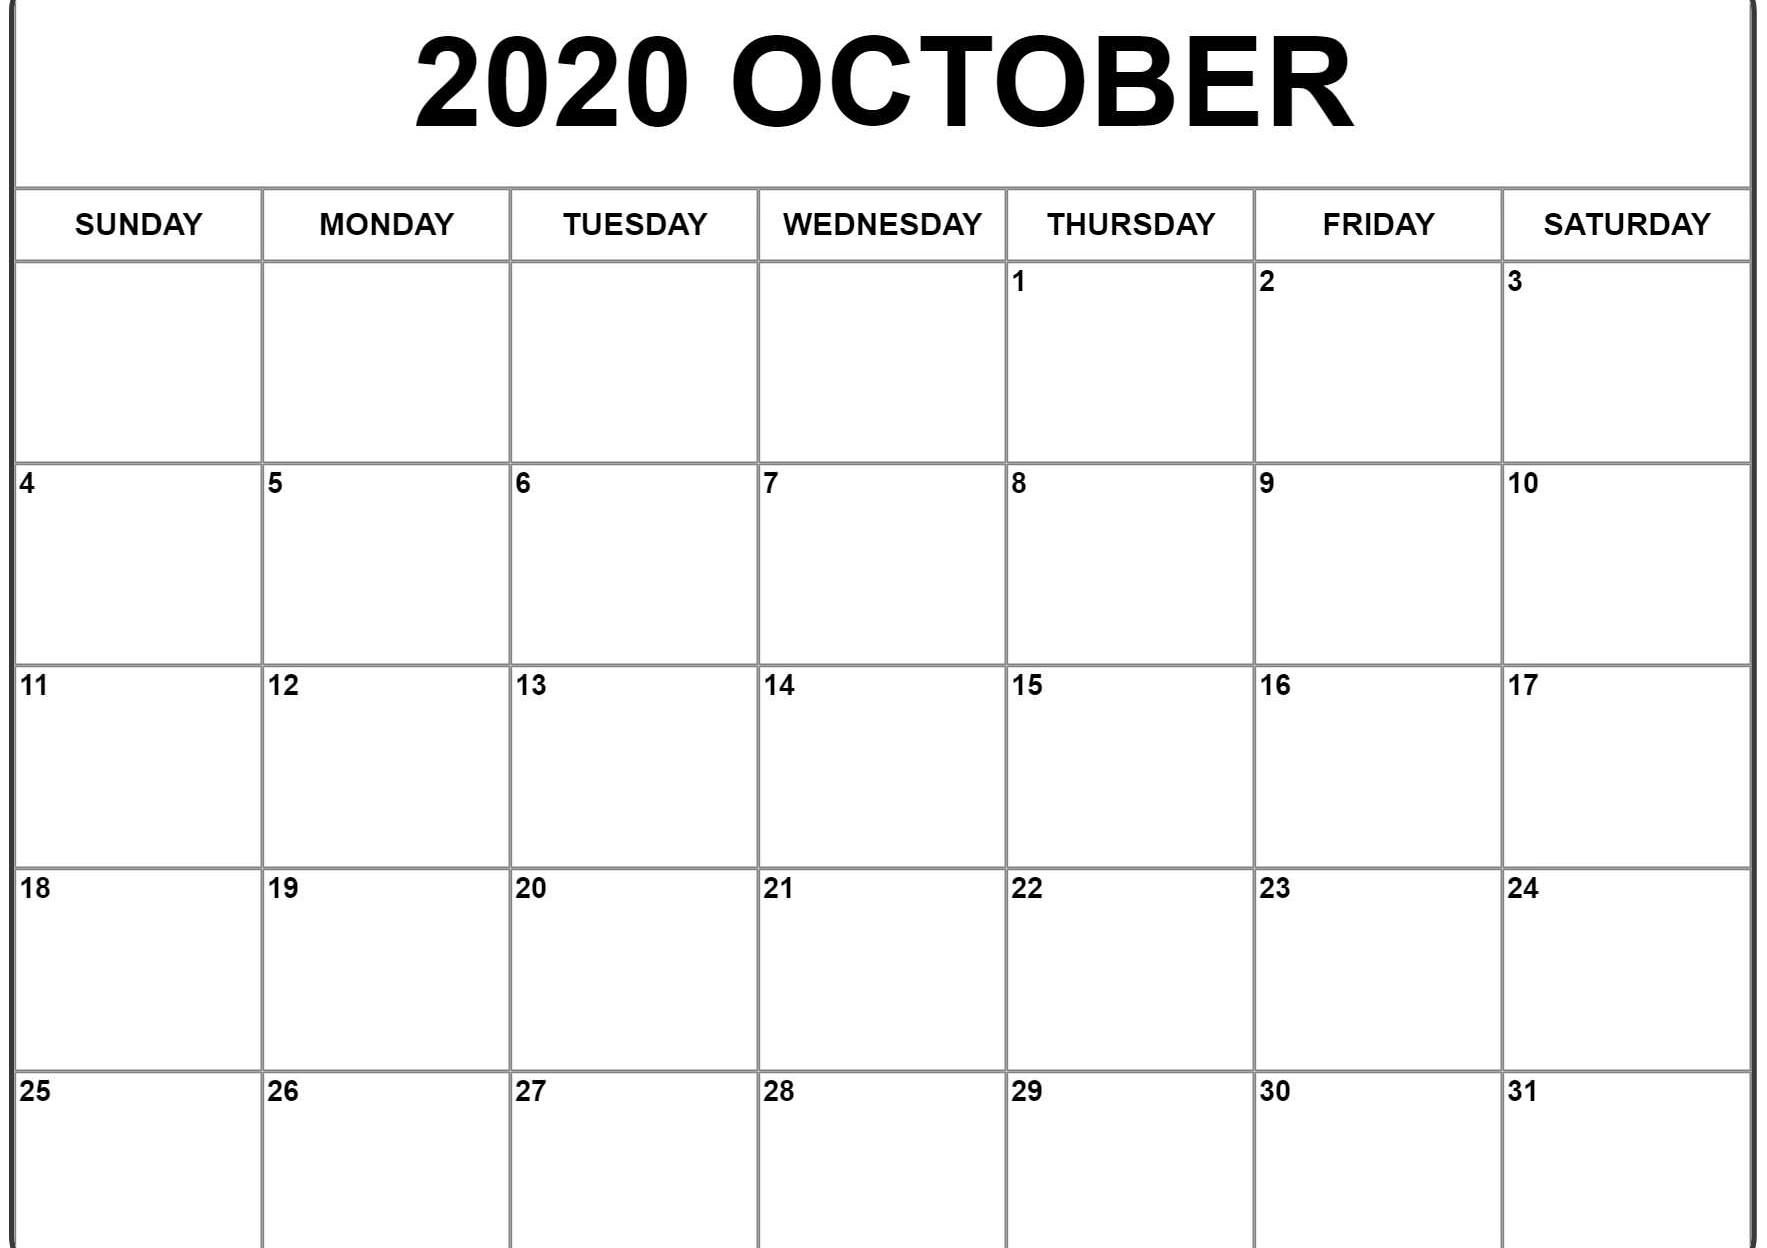 October 2020 Calendar Pdf, Word, Excel Template 2 | October